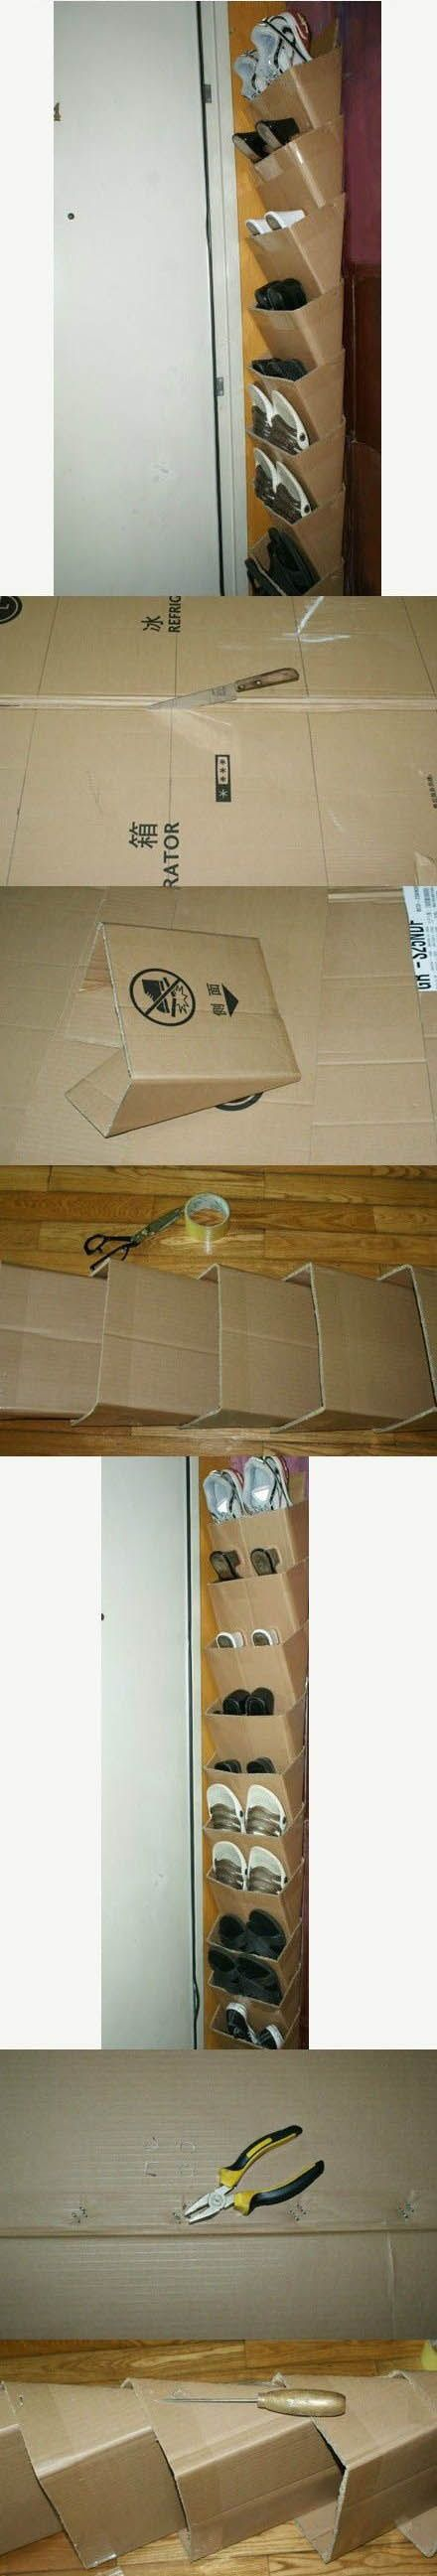 How To Make A Shoe Organizer Using Used Cardboard Boxes Diy Creative Ideas Crafts